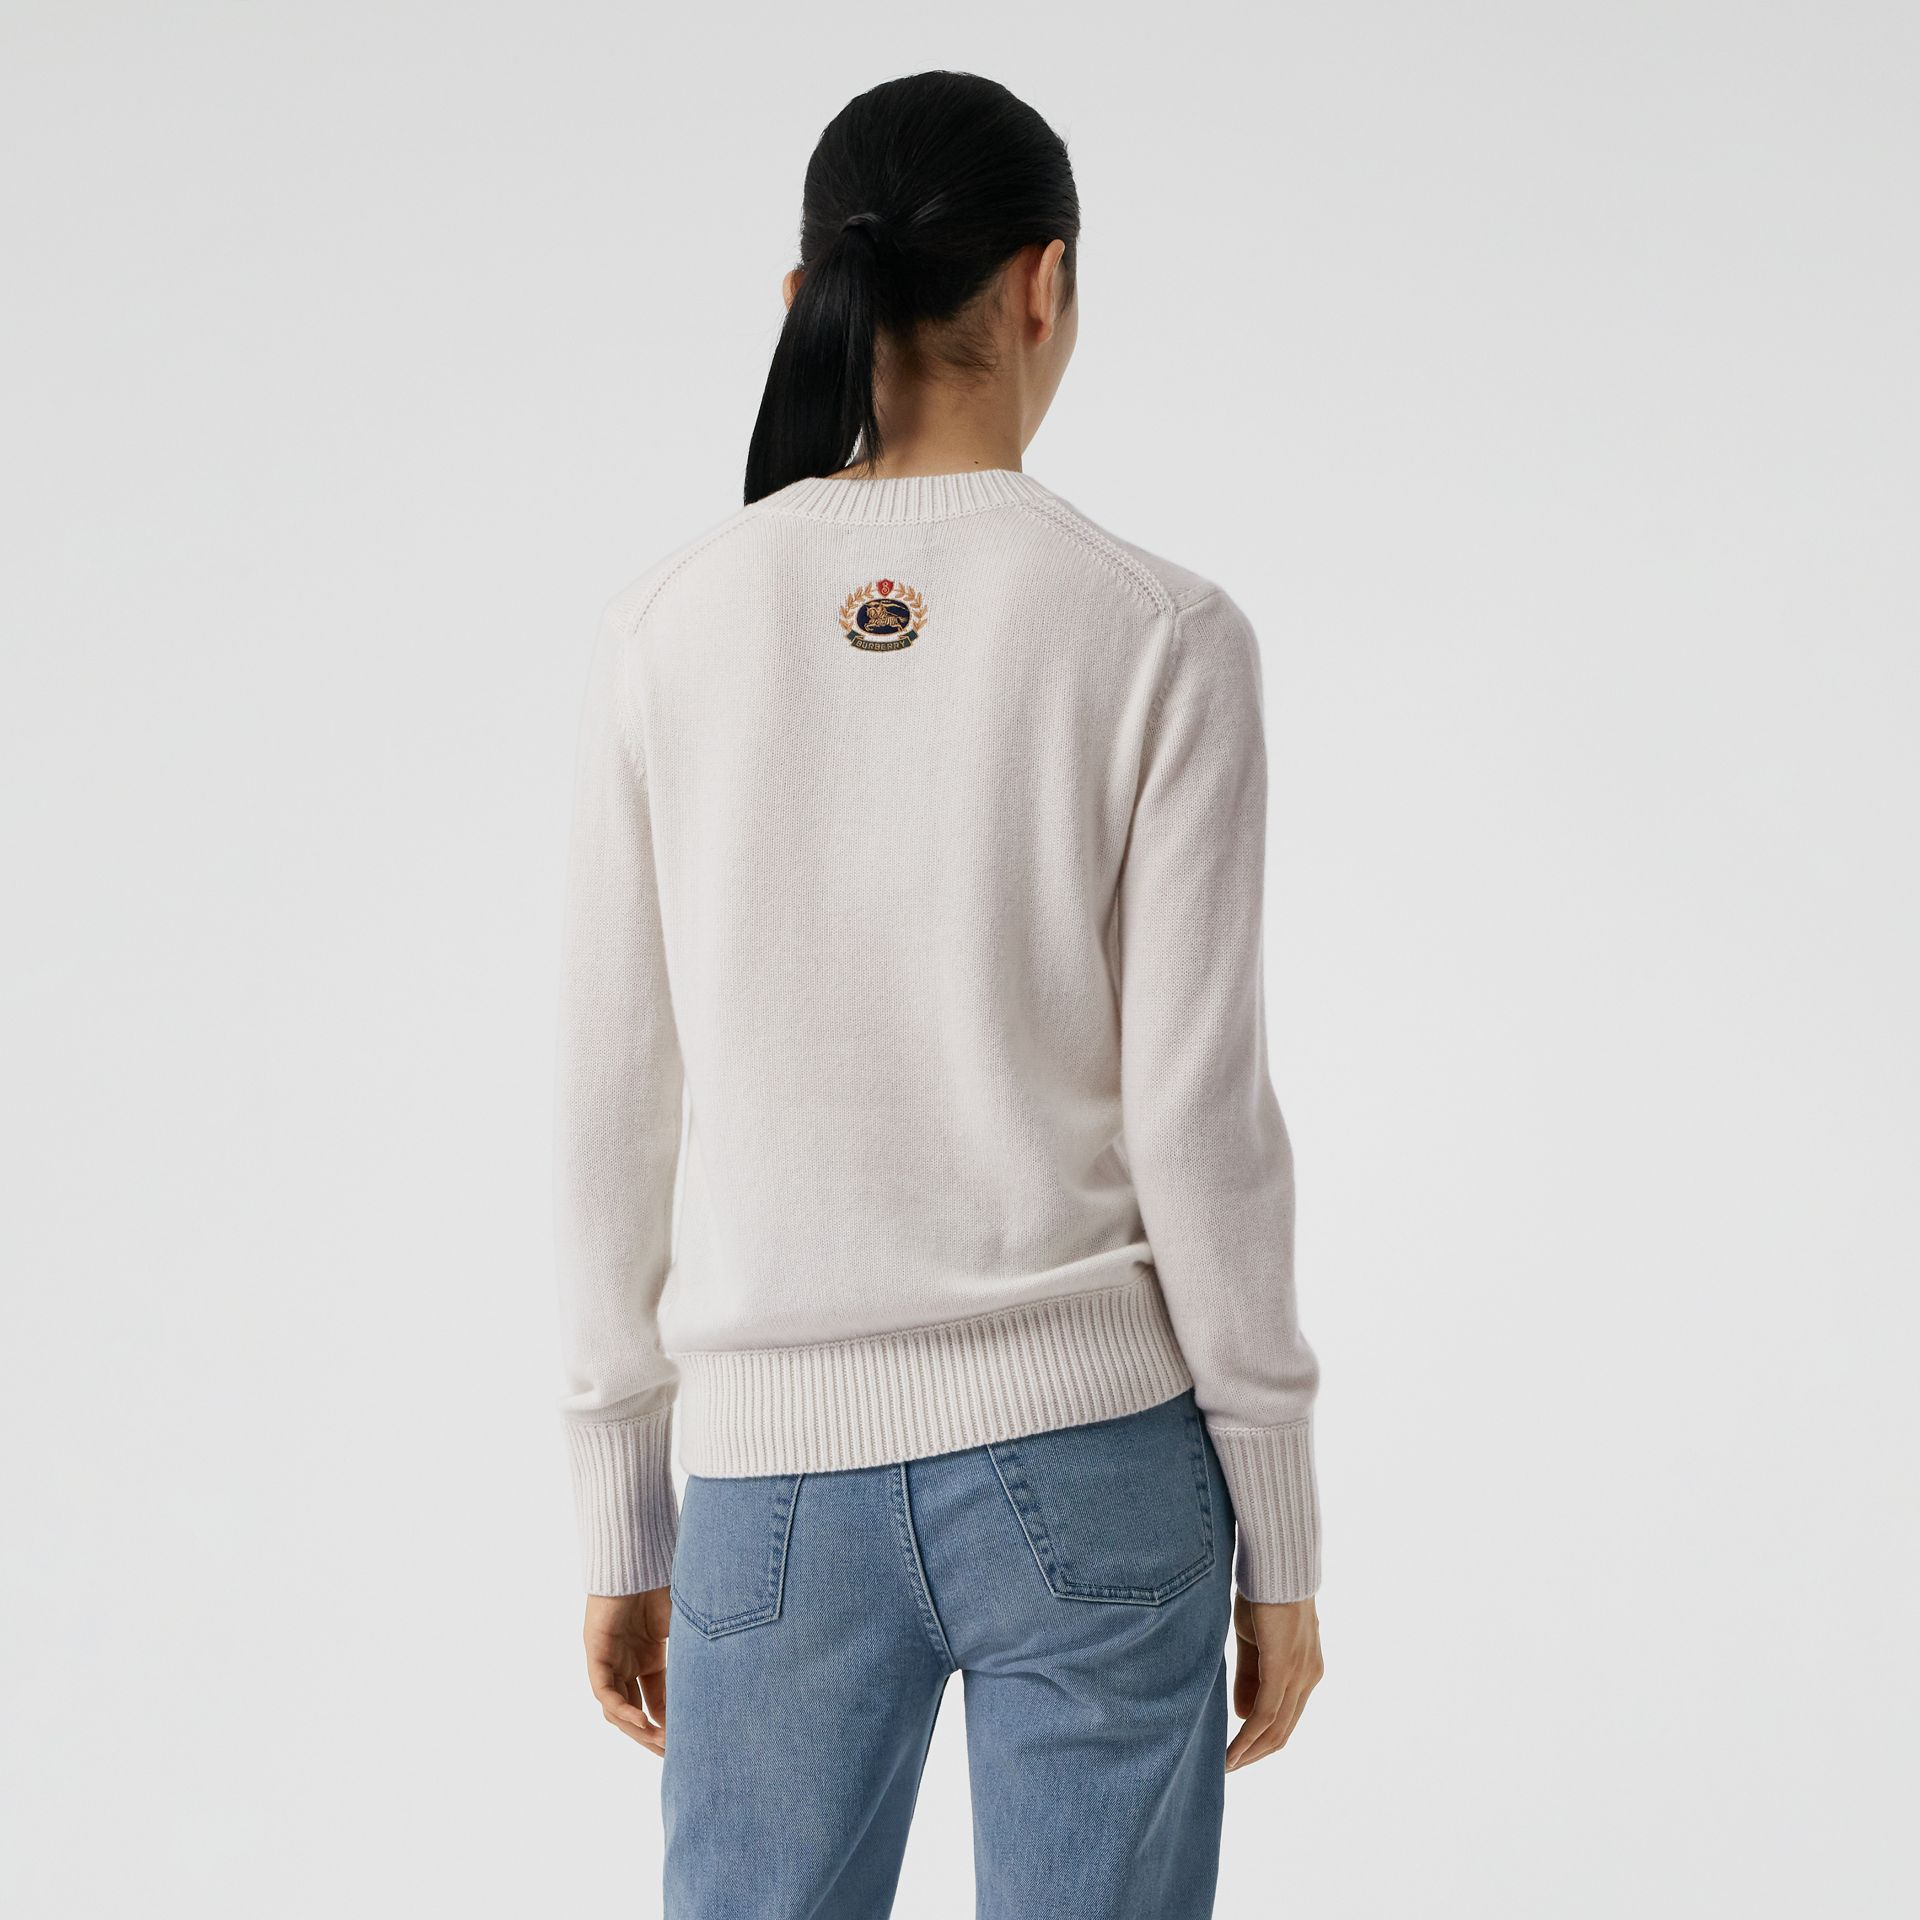 Archive Logo Appliqué Cashmere Sweater in White - Women | Burberry Canada - gallery image 2